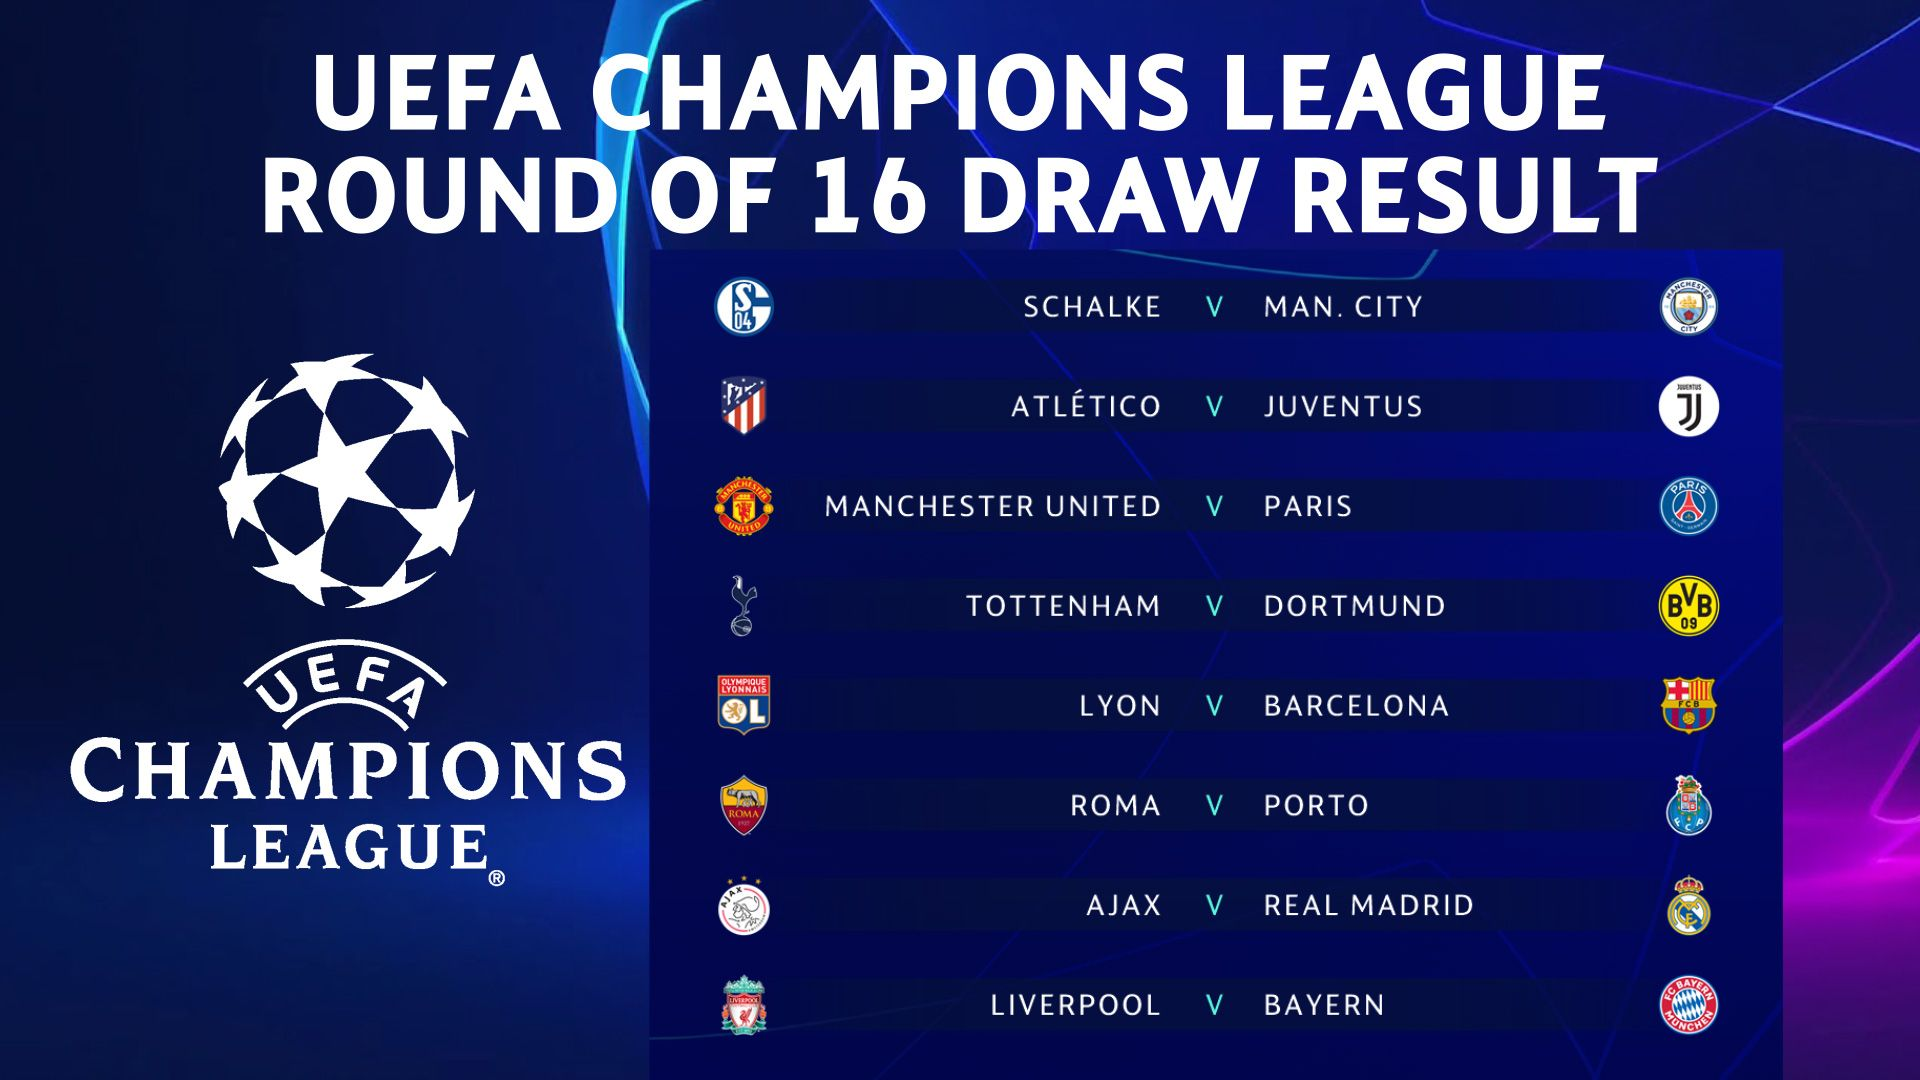 UEFA Champions League Round of 16 Draw Result #UCLdraw ...